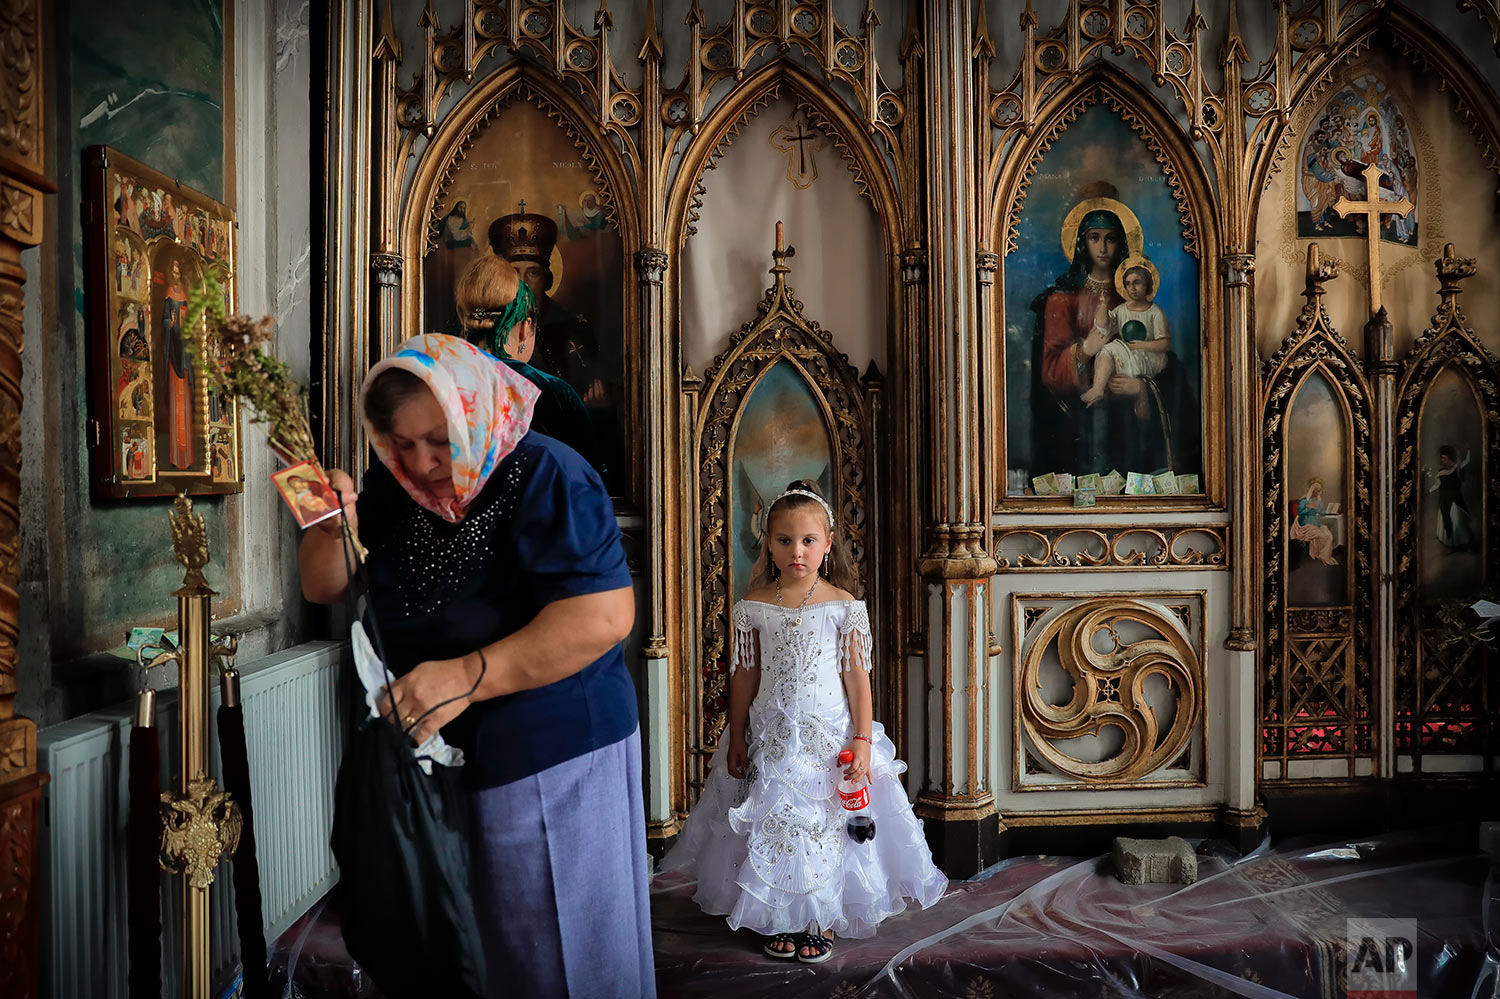 In this Friday, Sept. 8, 2017 photograph, a Roma girl waits for her mother after walking by the altar of the church in the Bistrita monastery compound in Costesti, Romania. (AP Photo/Vadim Ghirda)